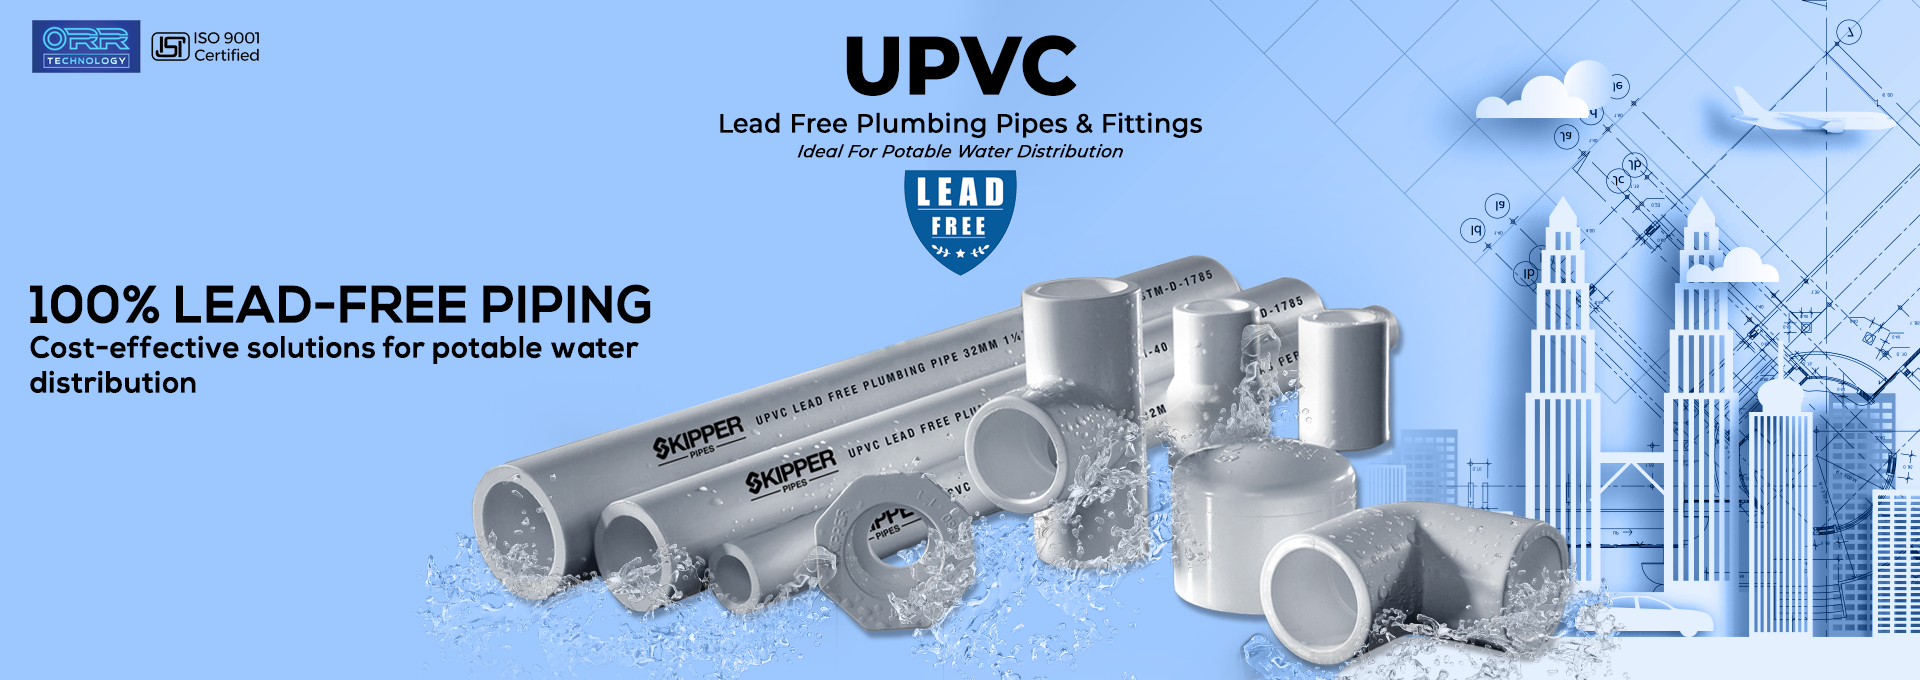 Plumbing Pipes and Fittings - Skipper Pipes